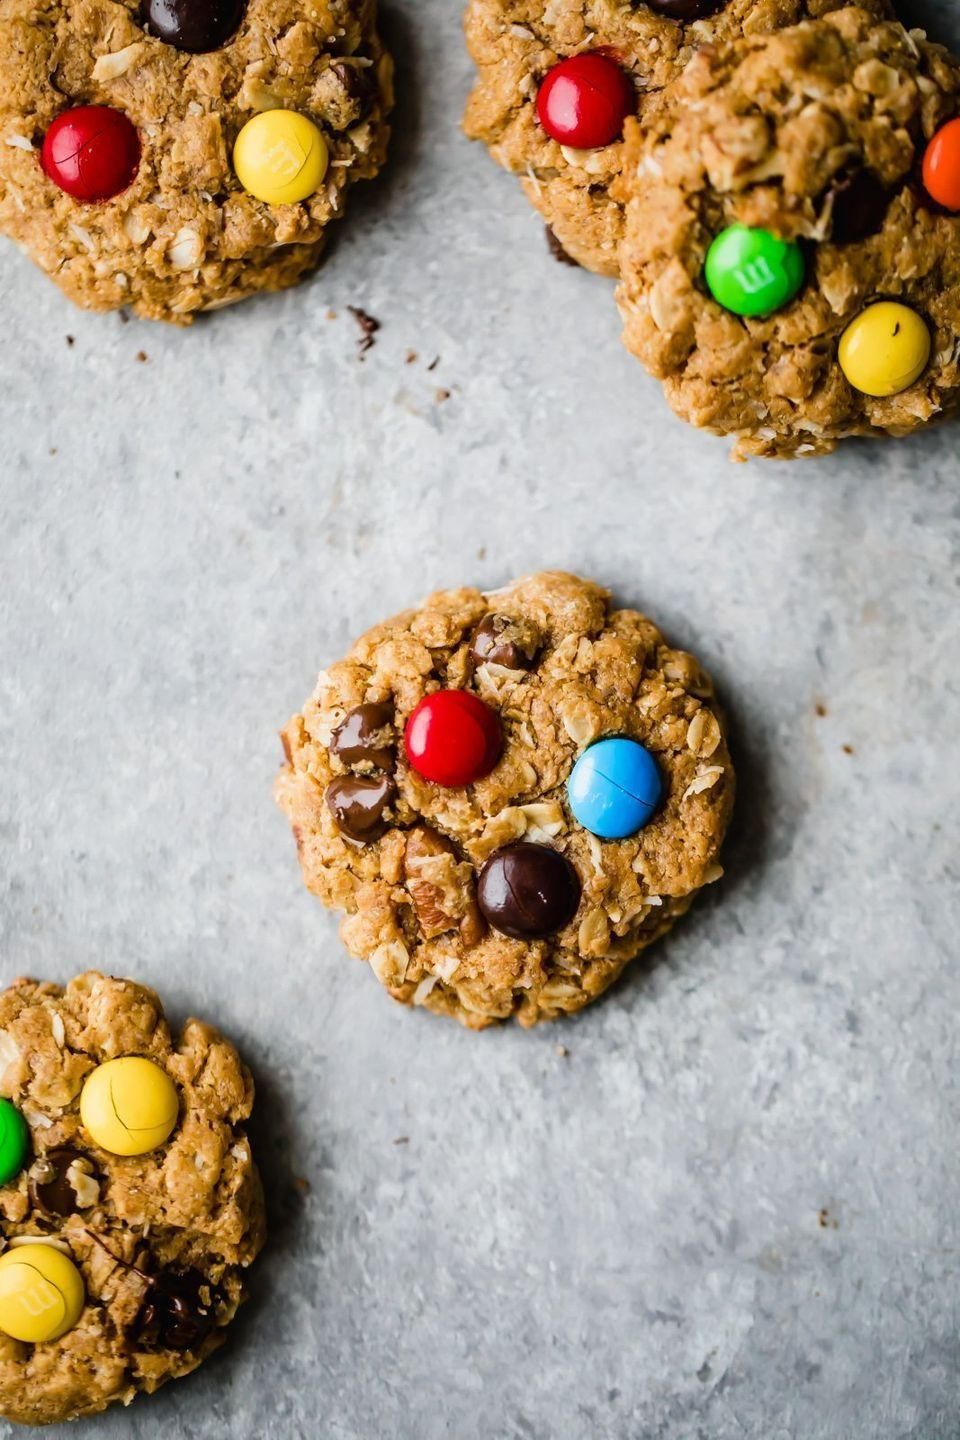 """<p>You won't miss the flour in these loaded cookies—they still have some sweet ingredients (like M&Ms) but they're also packed with protein and healthy fats thanks to oats, peanut butter, and nuts. </p><p><strong>Get the recipe at <a href=""""https://www.ambitiouskitchen.com/healthy-flourless-monster-cookies/"""" rel=""""nofollow noopener"""" target=""""_blank"""" data-ylk=""""slk:Ambitious Kitchen"""" class=""""link rapid-noclick-resp"""">Ambitious Kitchen</a>. </strong></p>"""